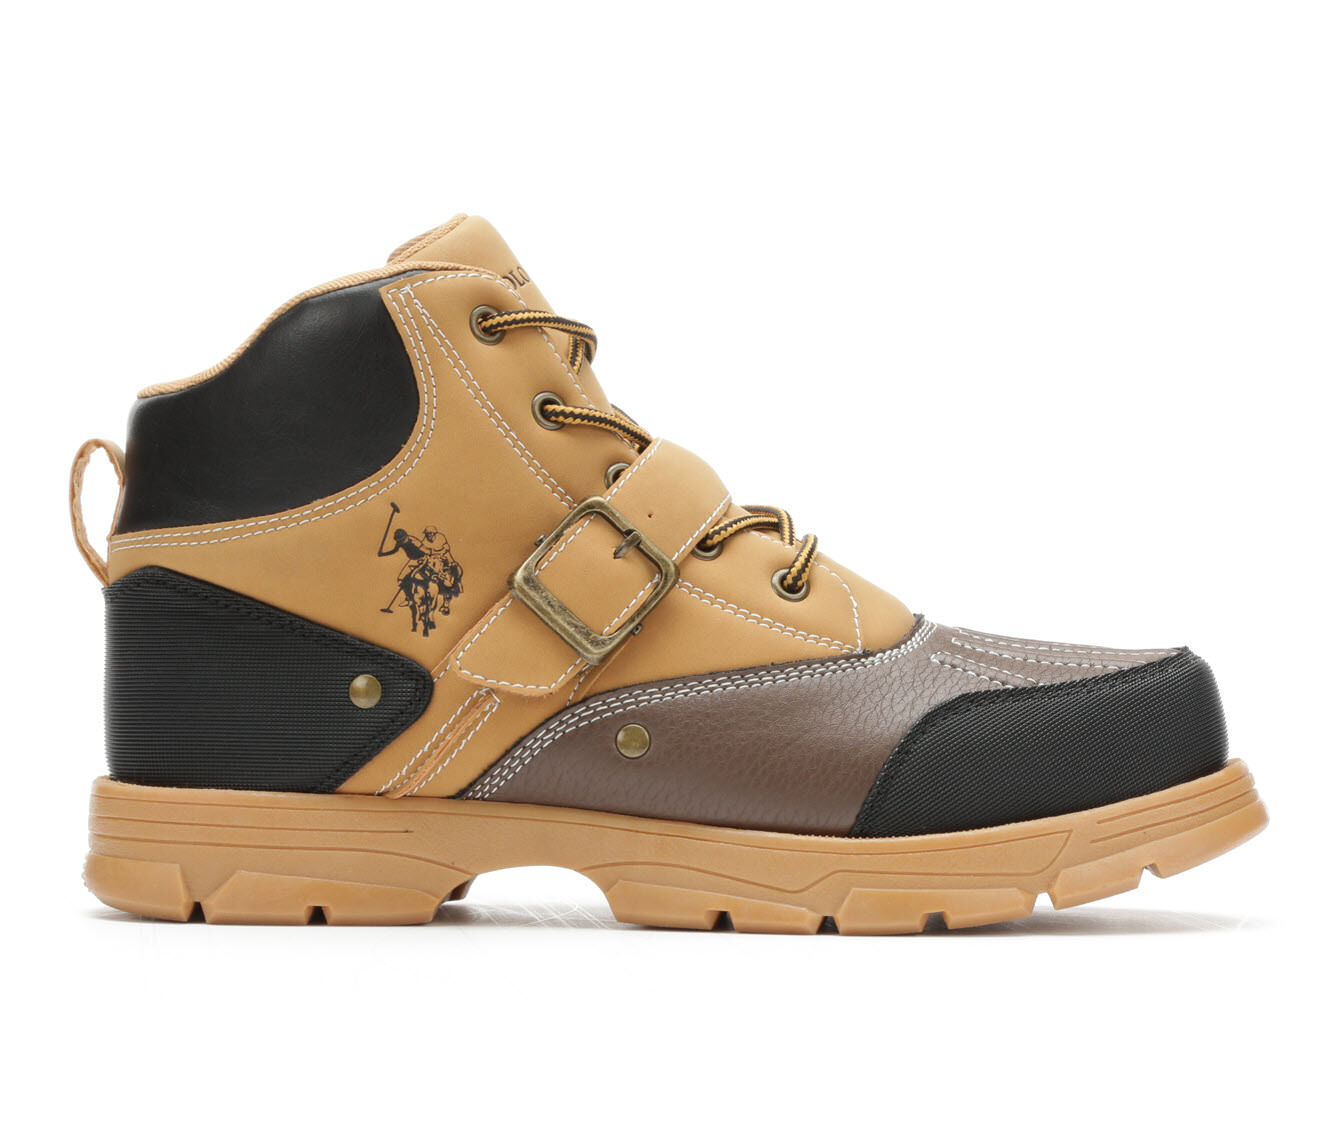 Men's US Polo Assn Kedge Lace-Up Boots Wheat/Brown